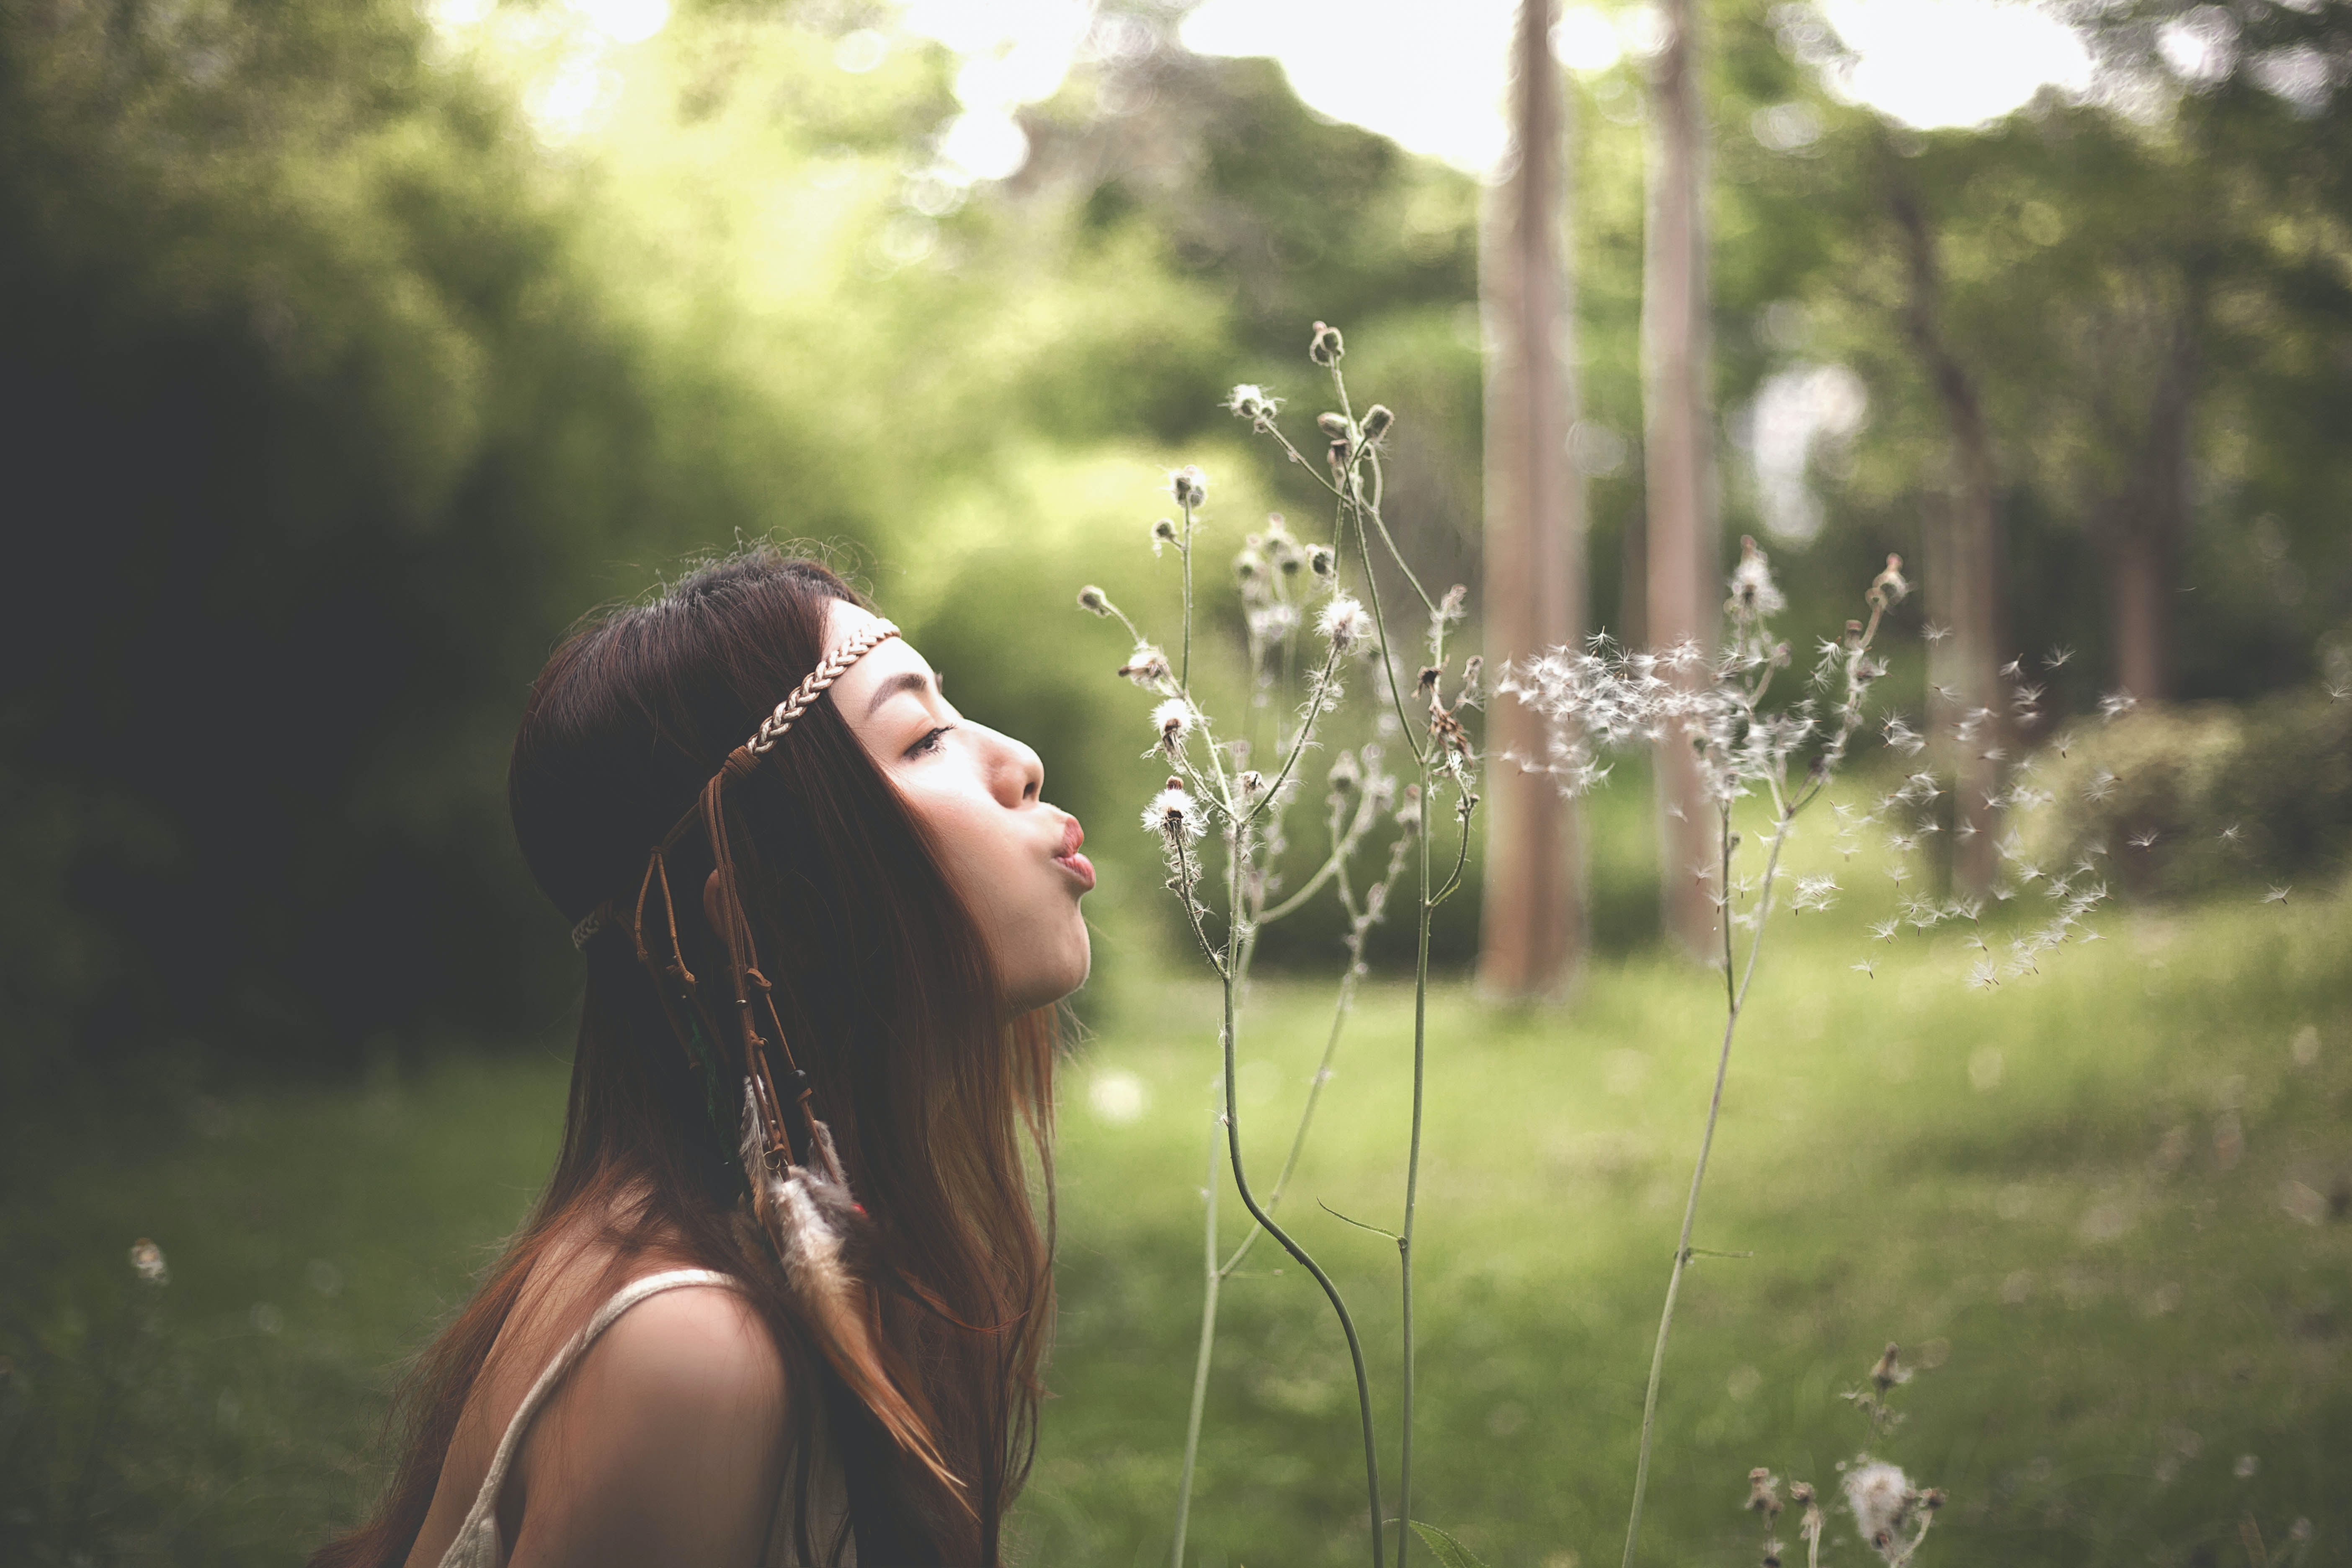 A young woman blowing on dandelion seed heads